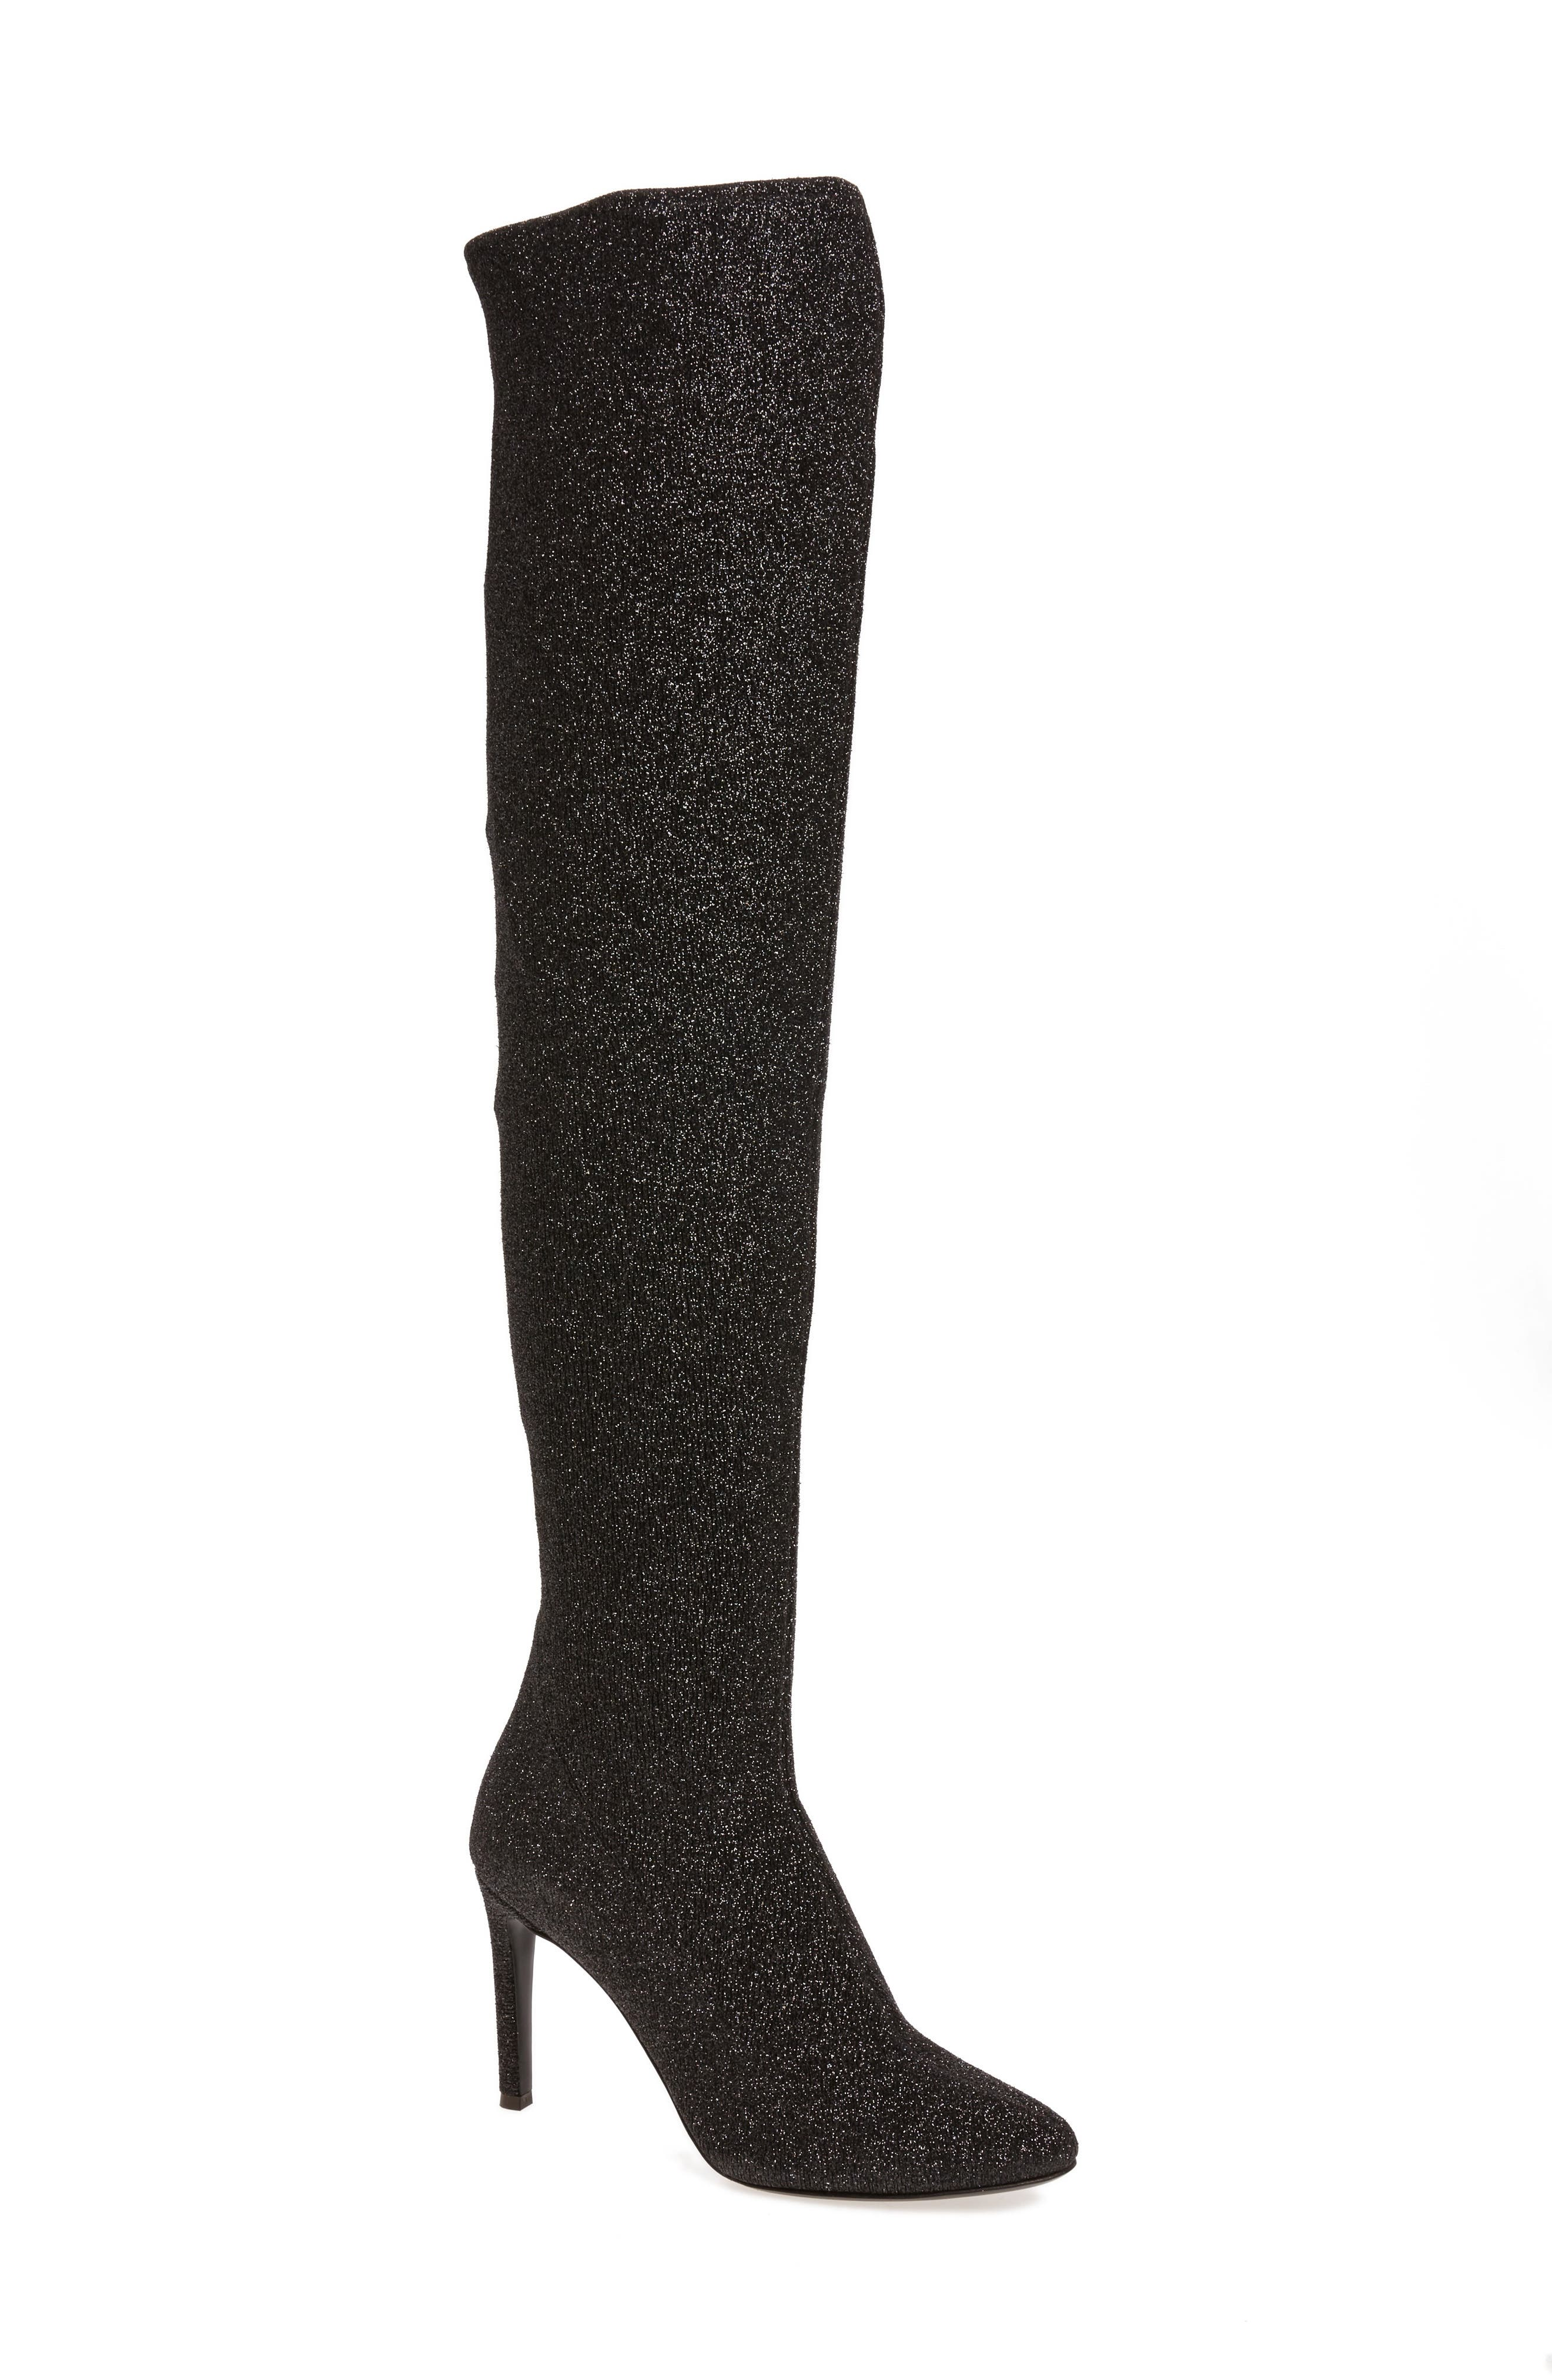 Giuseppe Zanotti Glitter Stretch Over the Knee Boot (Women)